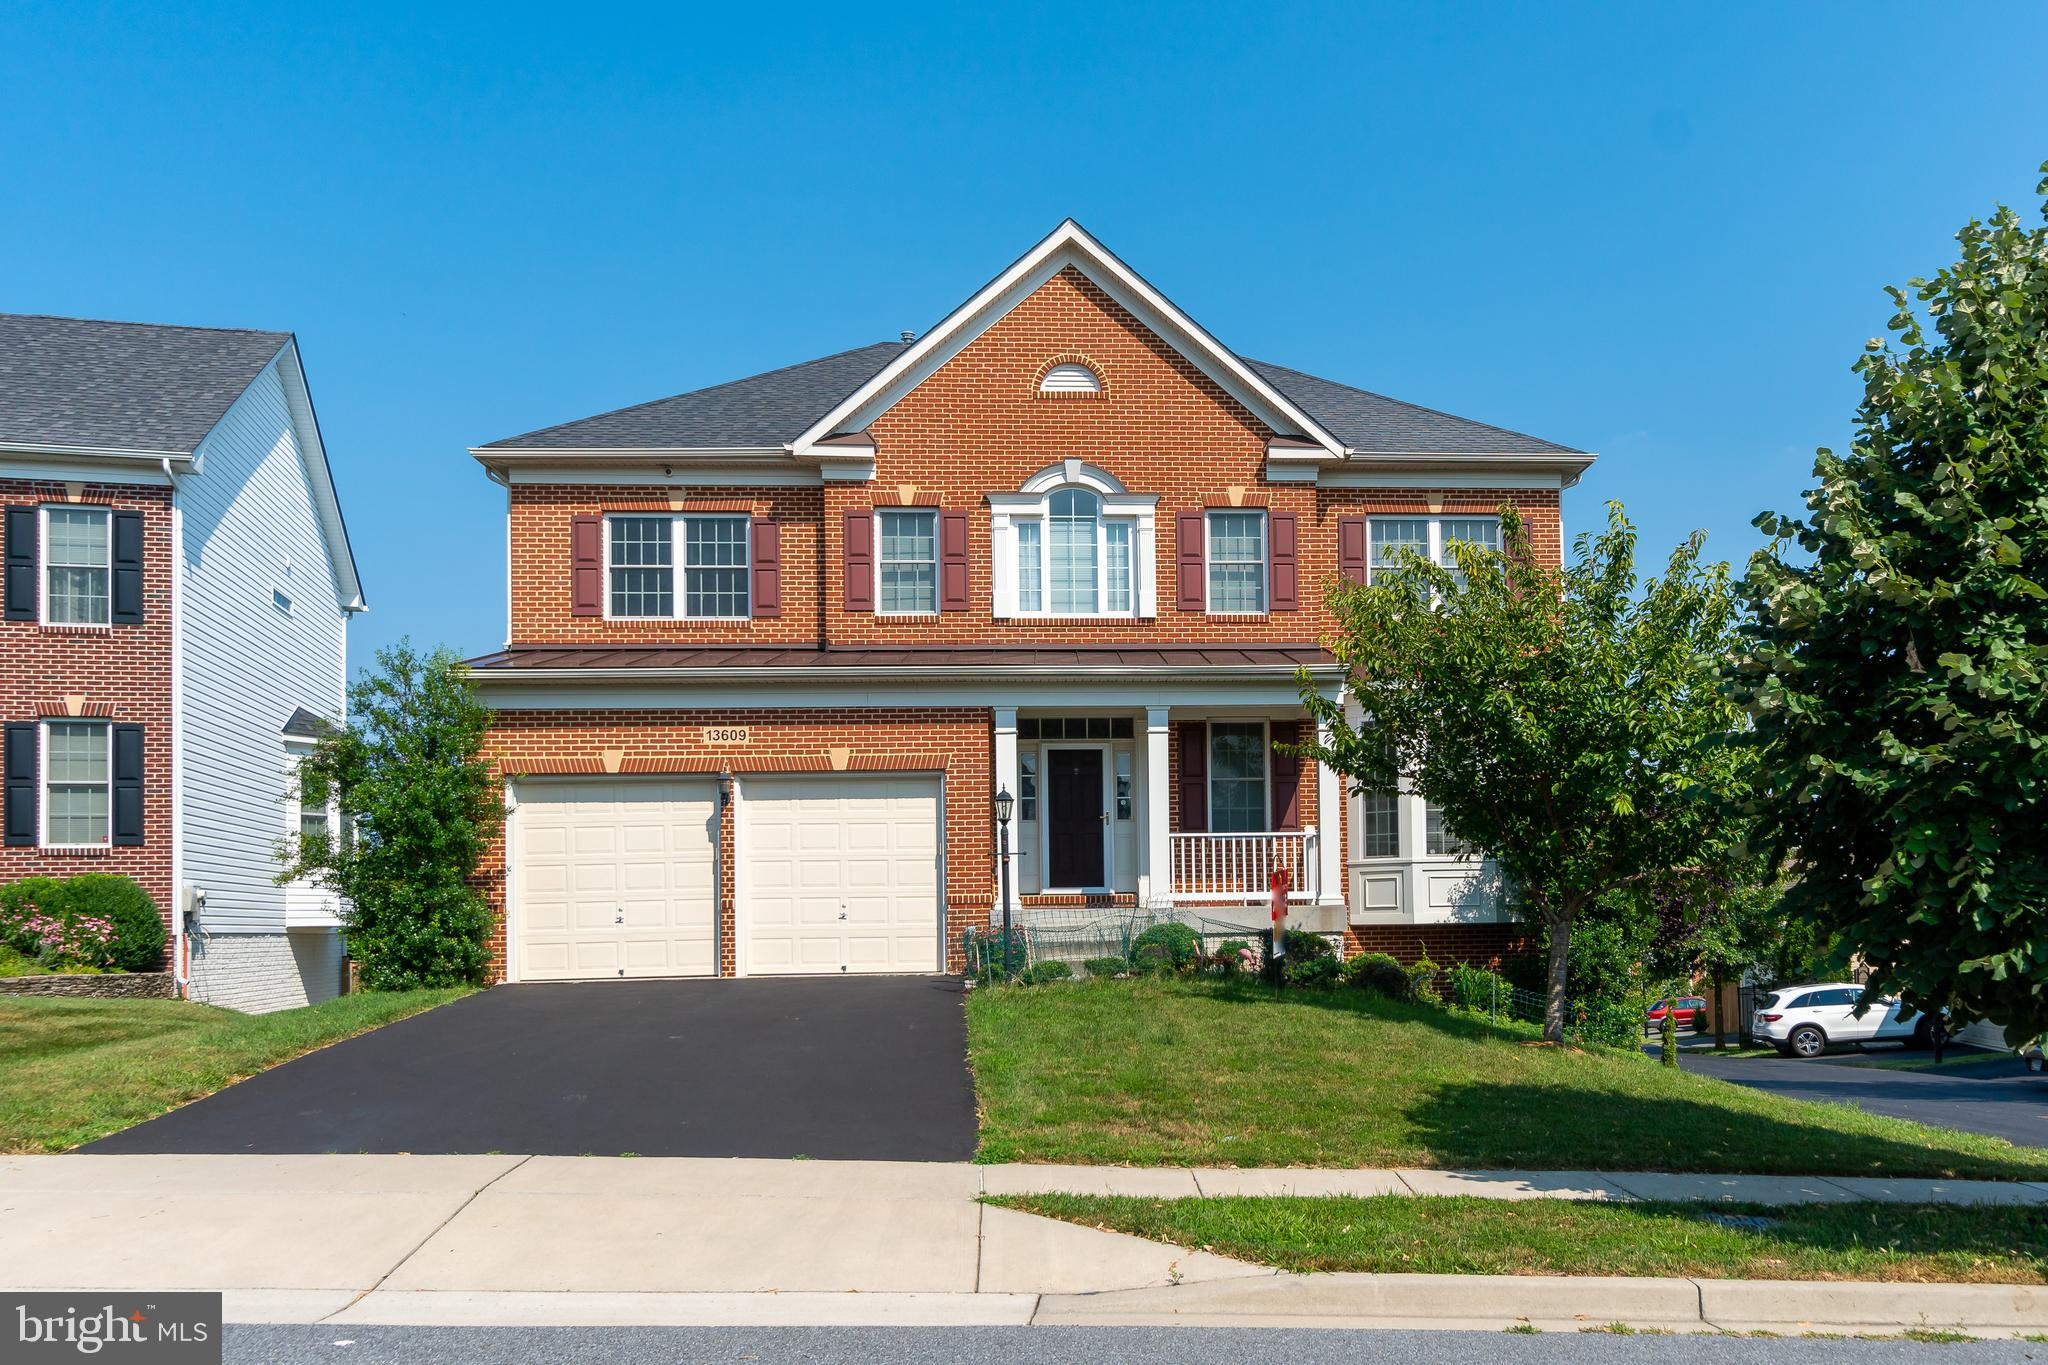 The beautiful house with Abbey model built by Winchester homes is one of the largest models in the n